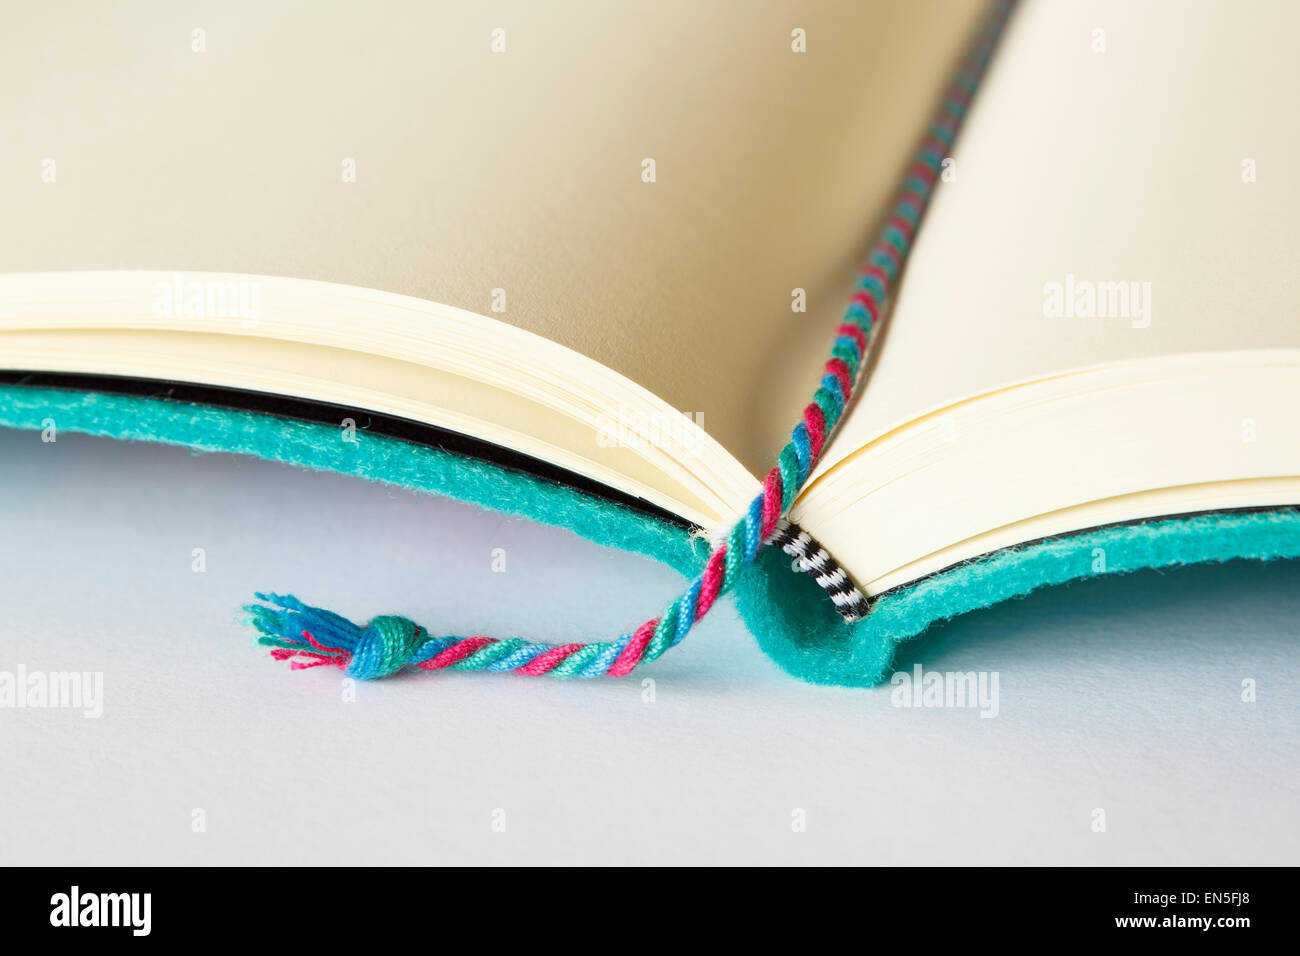 Open blank notebook with a bookmark marking the page on a plain surface with copy space on white background. - Stock Image